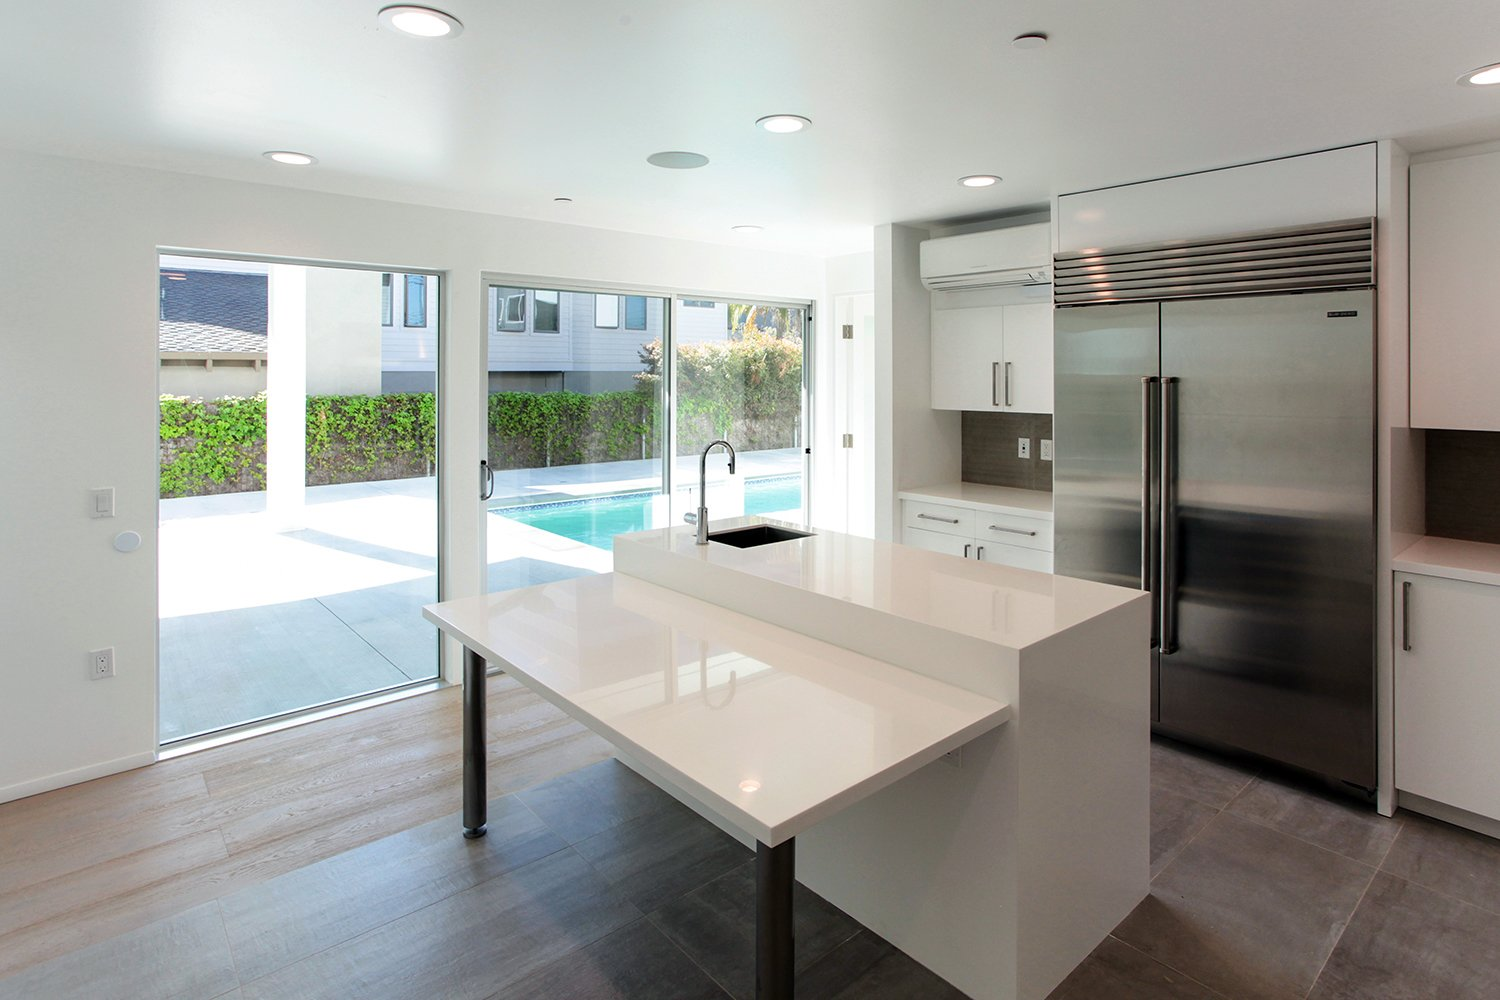 Kitchen Yale St Residence by Lincoln Chung Architect